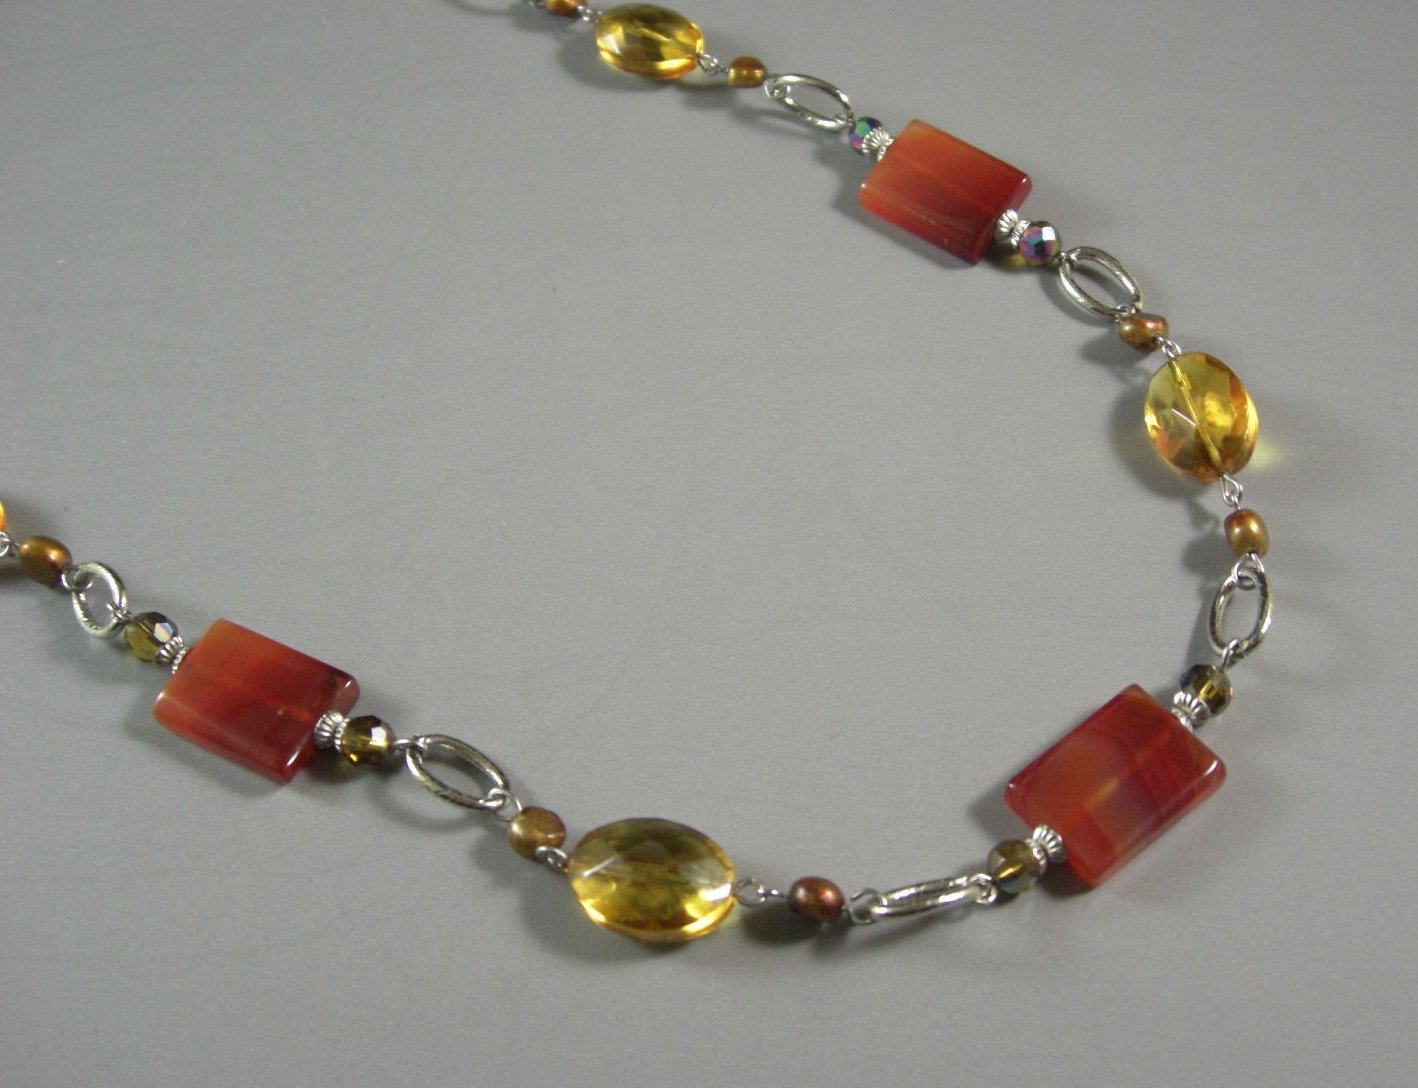 Chunky Amber Agate Chain Linked Necklace / 22 Over the Head